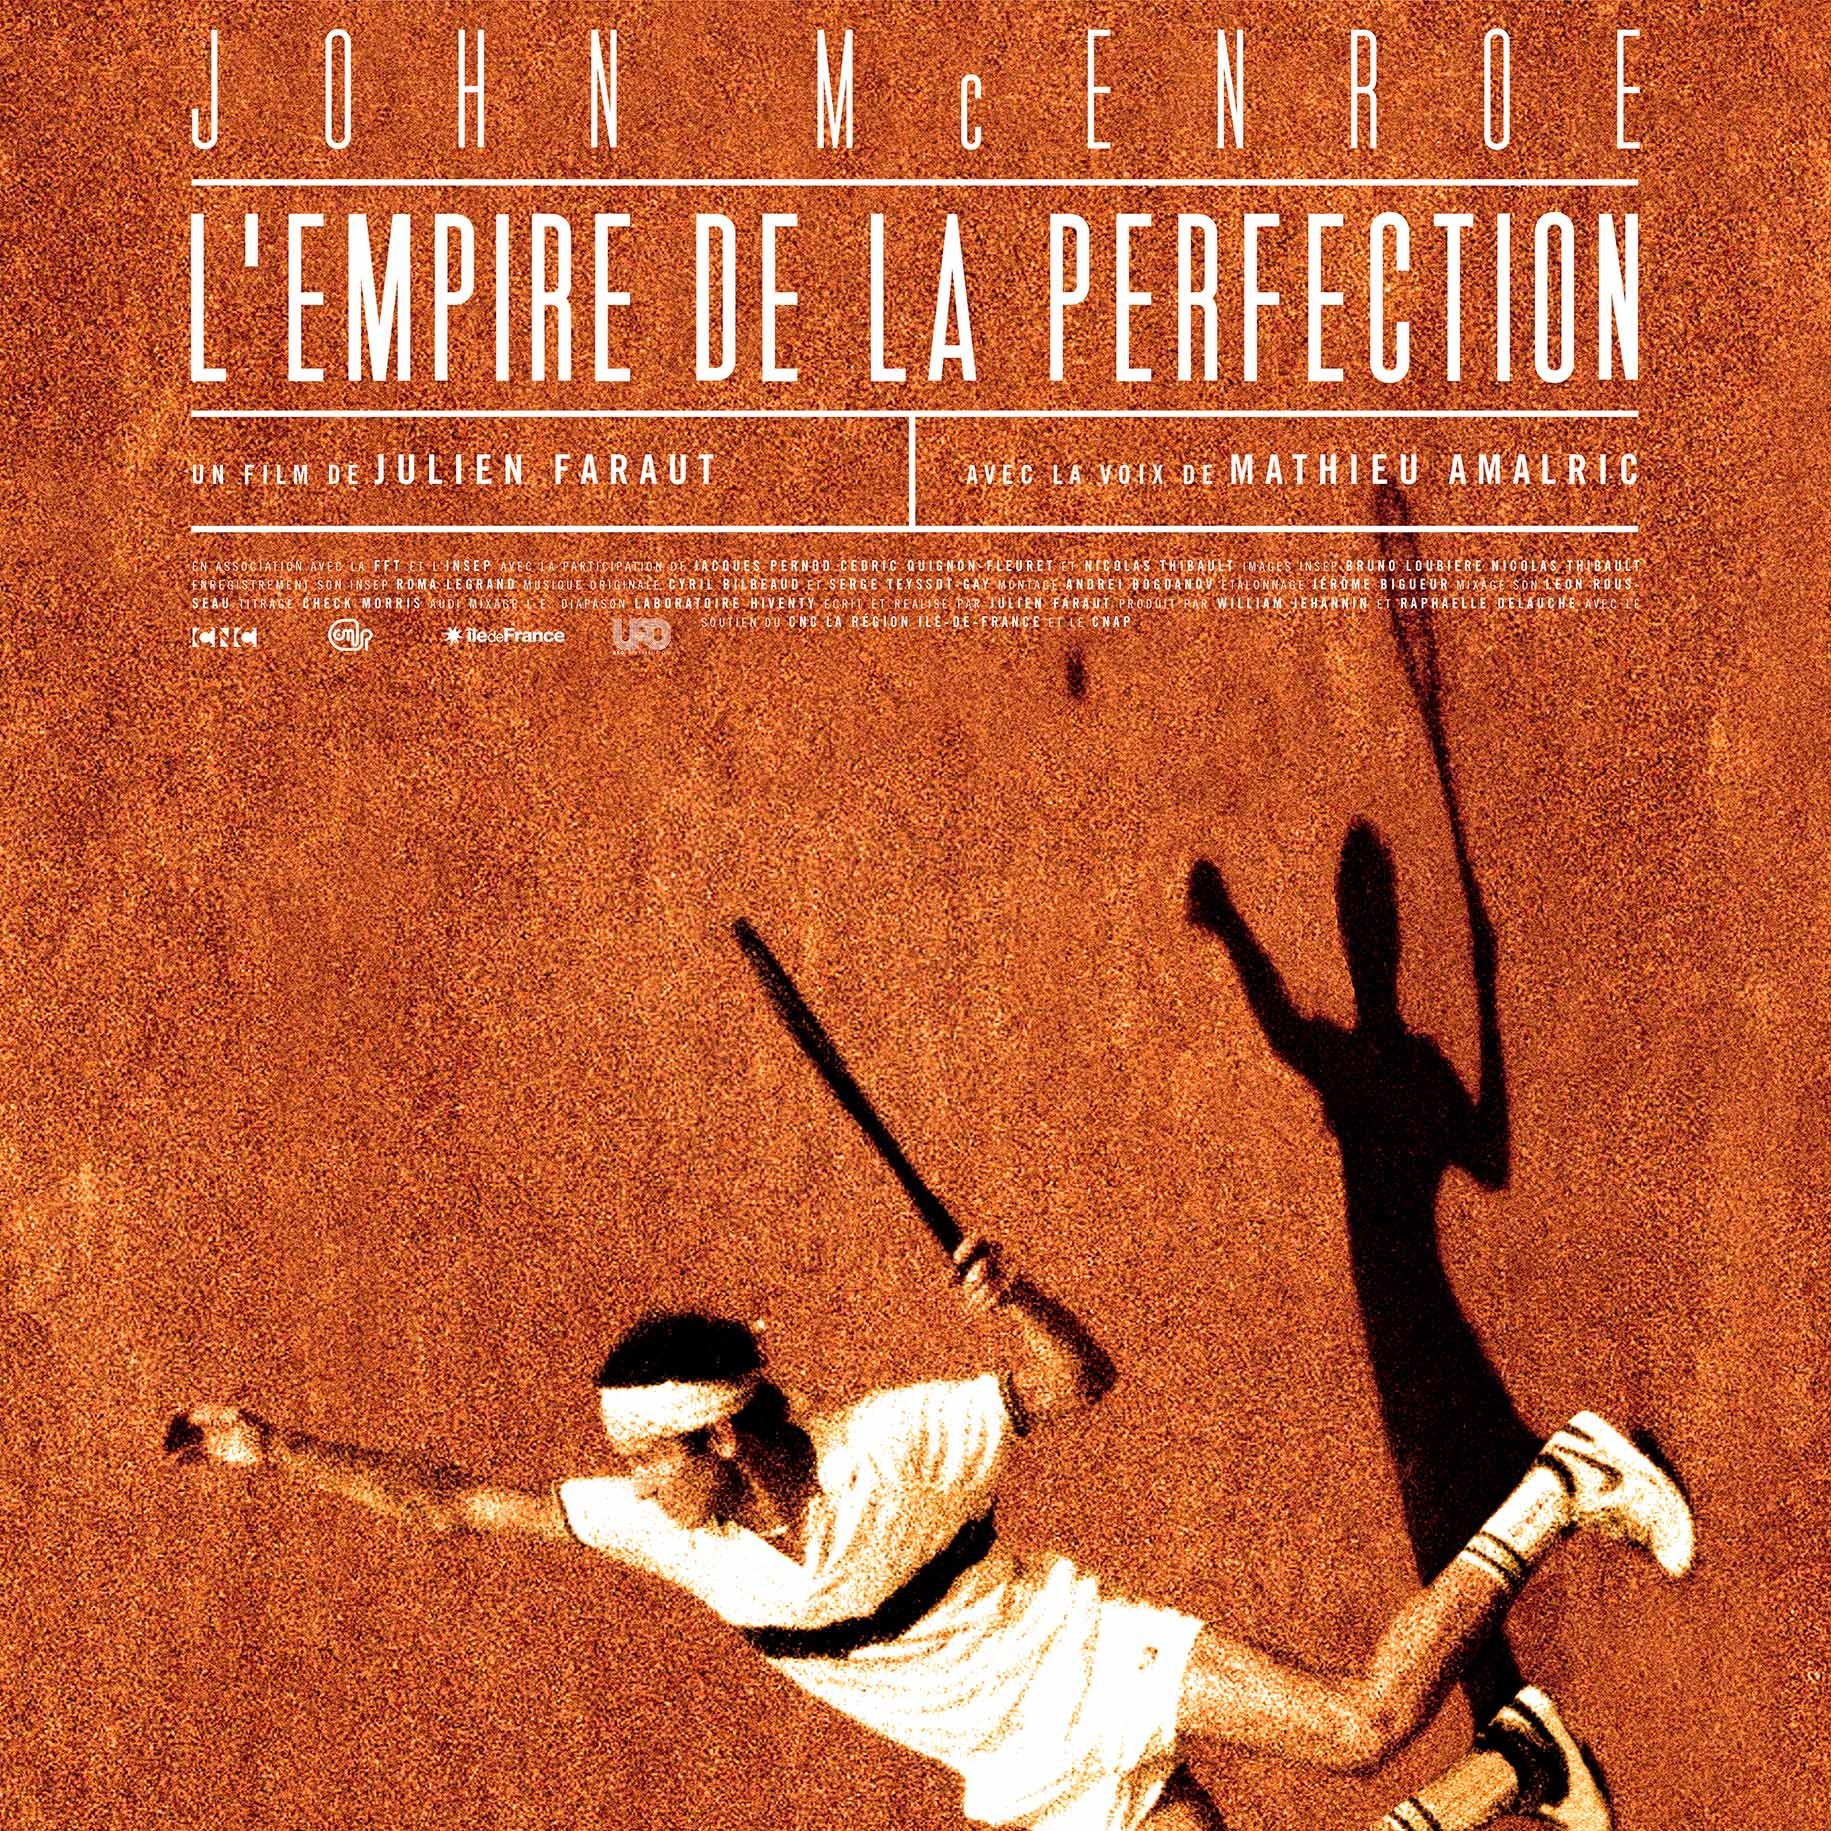 empire perfection film Seance VO Tropiques Atrium